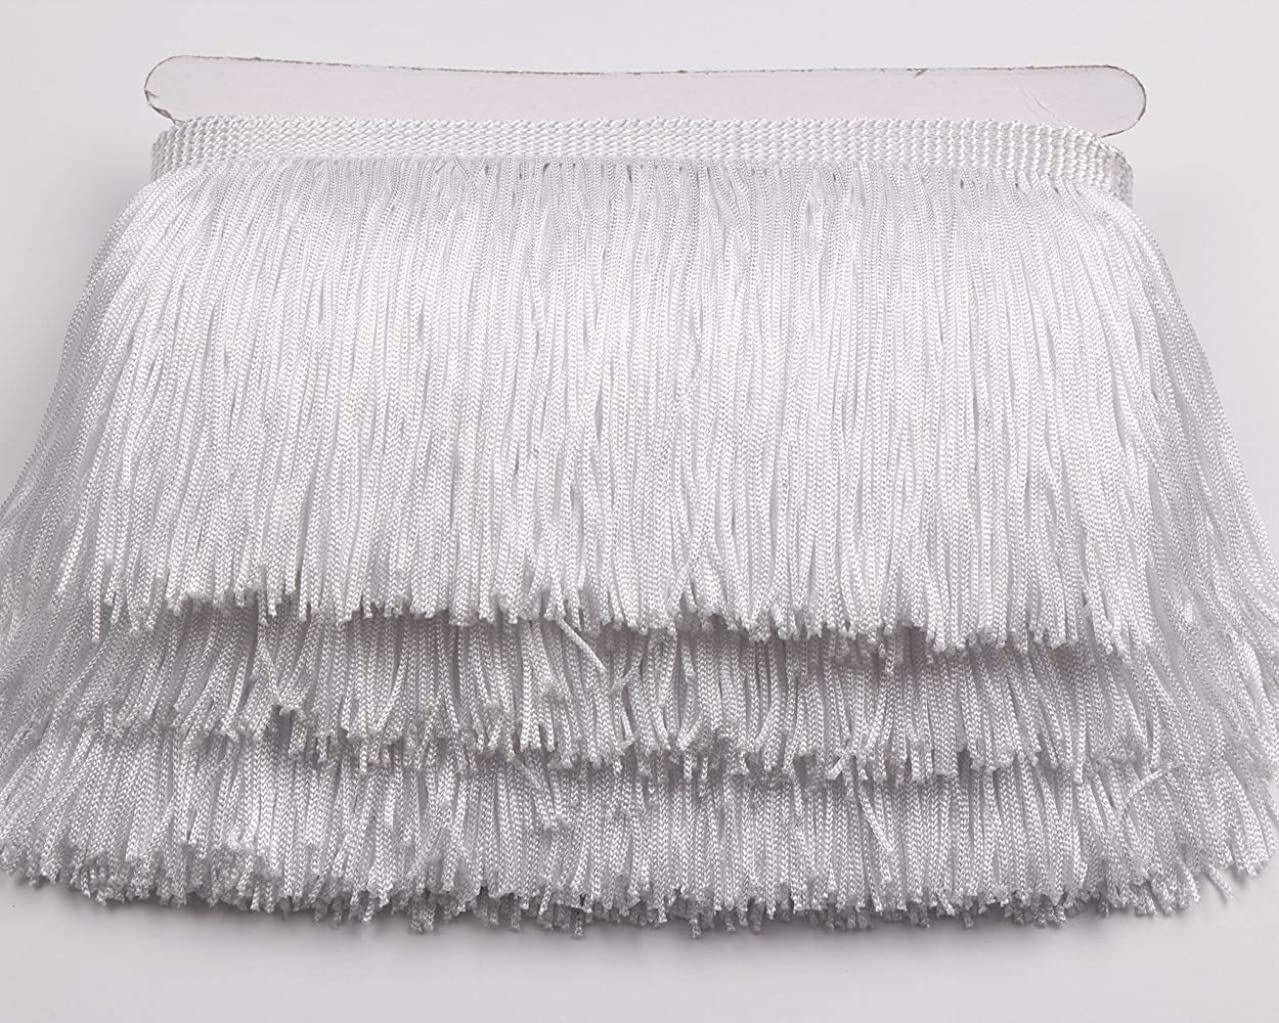 Heartwish268 Fringe Trim Lace Polyerter Fibre Tassel 4inch(″) Wide 10 Yards Long for Clothes Accessories and Latin Wedding Dress and DIY Lamp Shade Decoration Black (White)